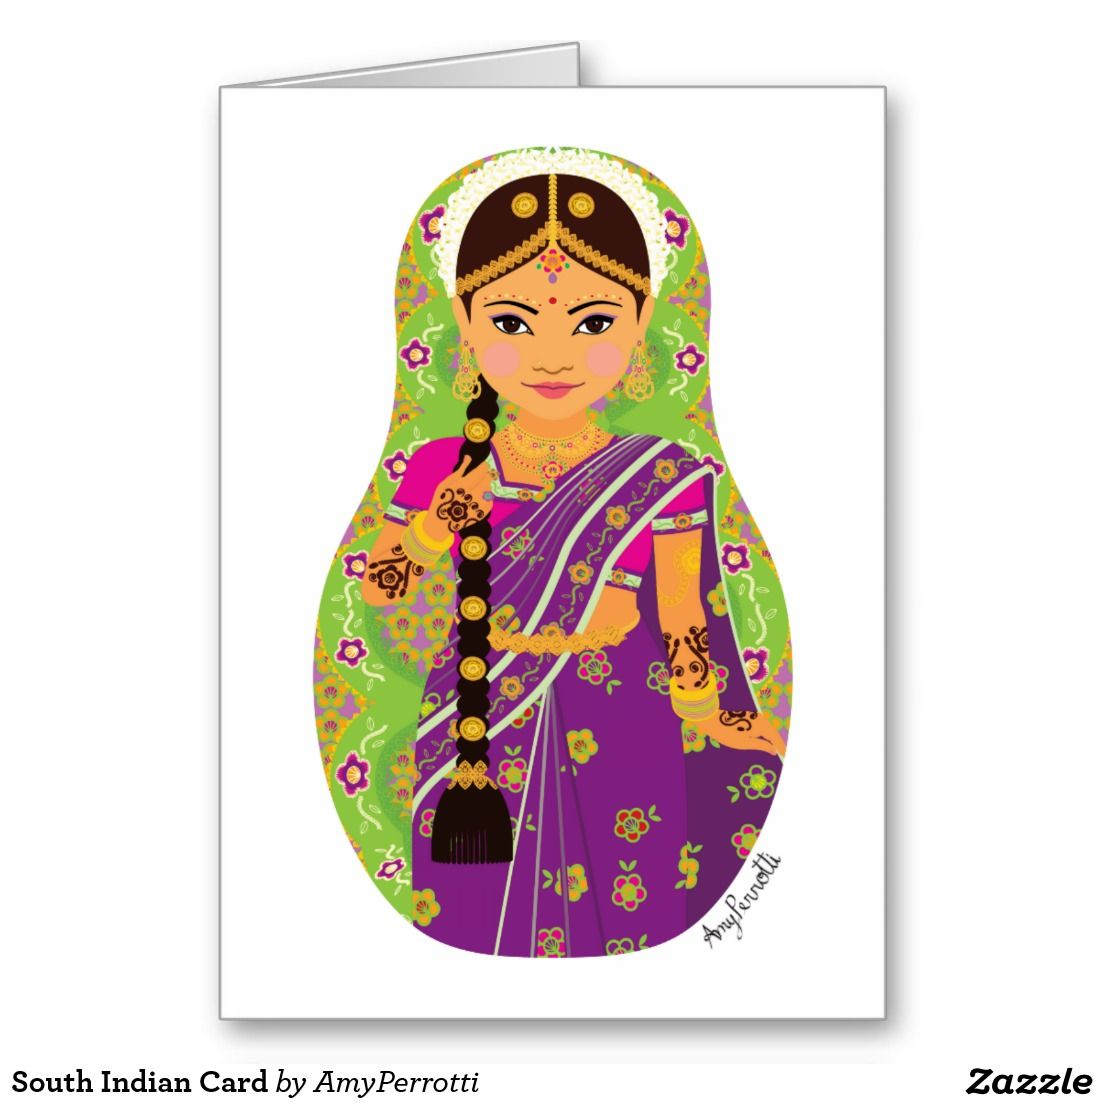 South Indian Card